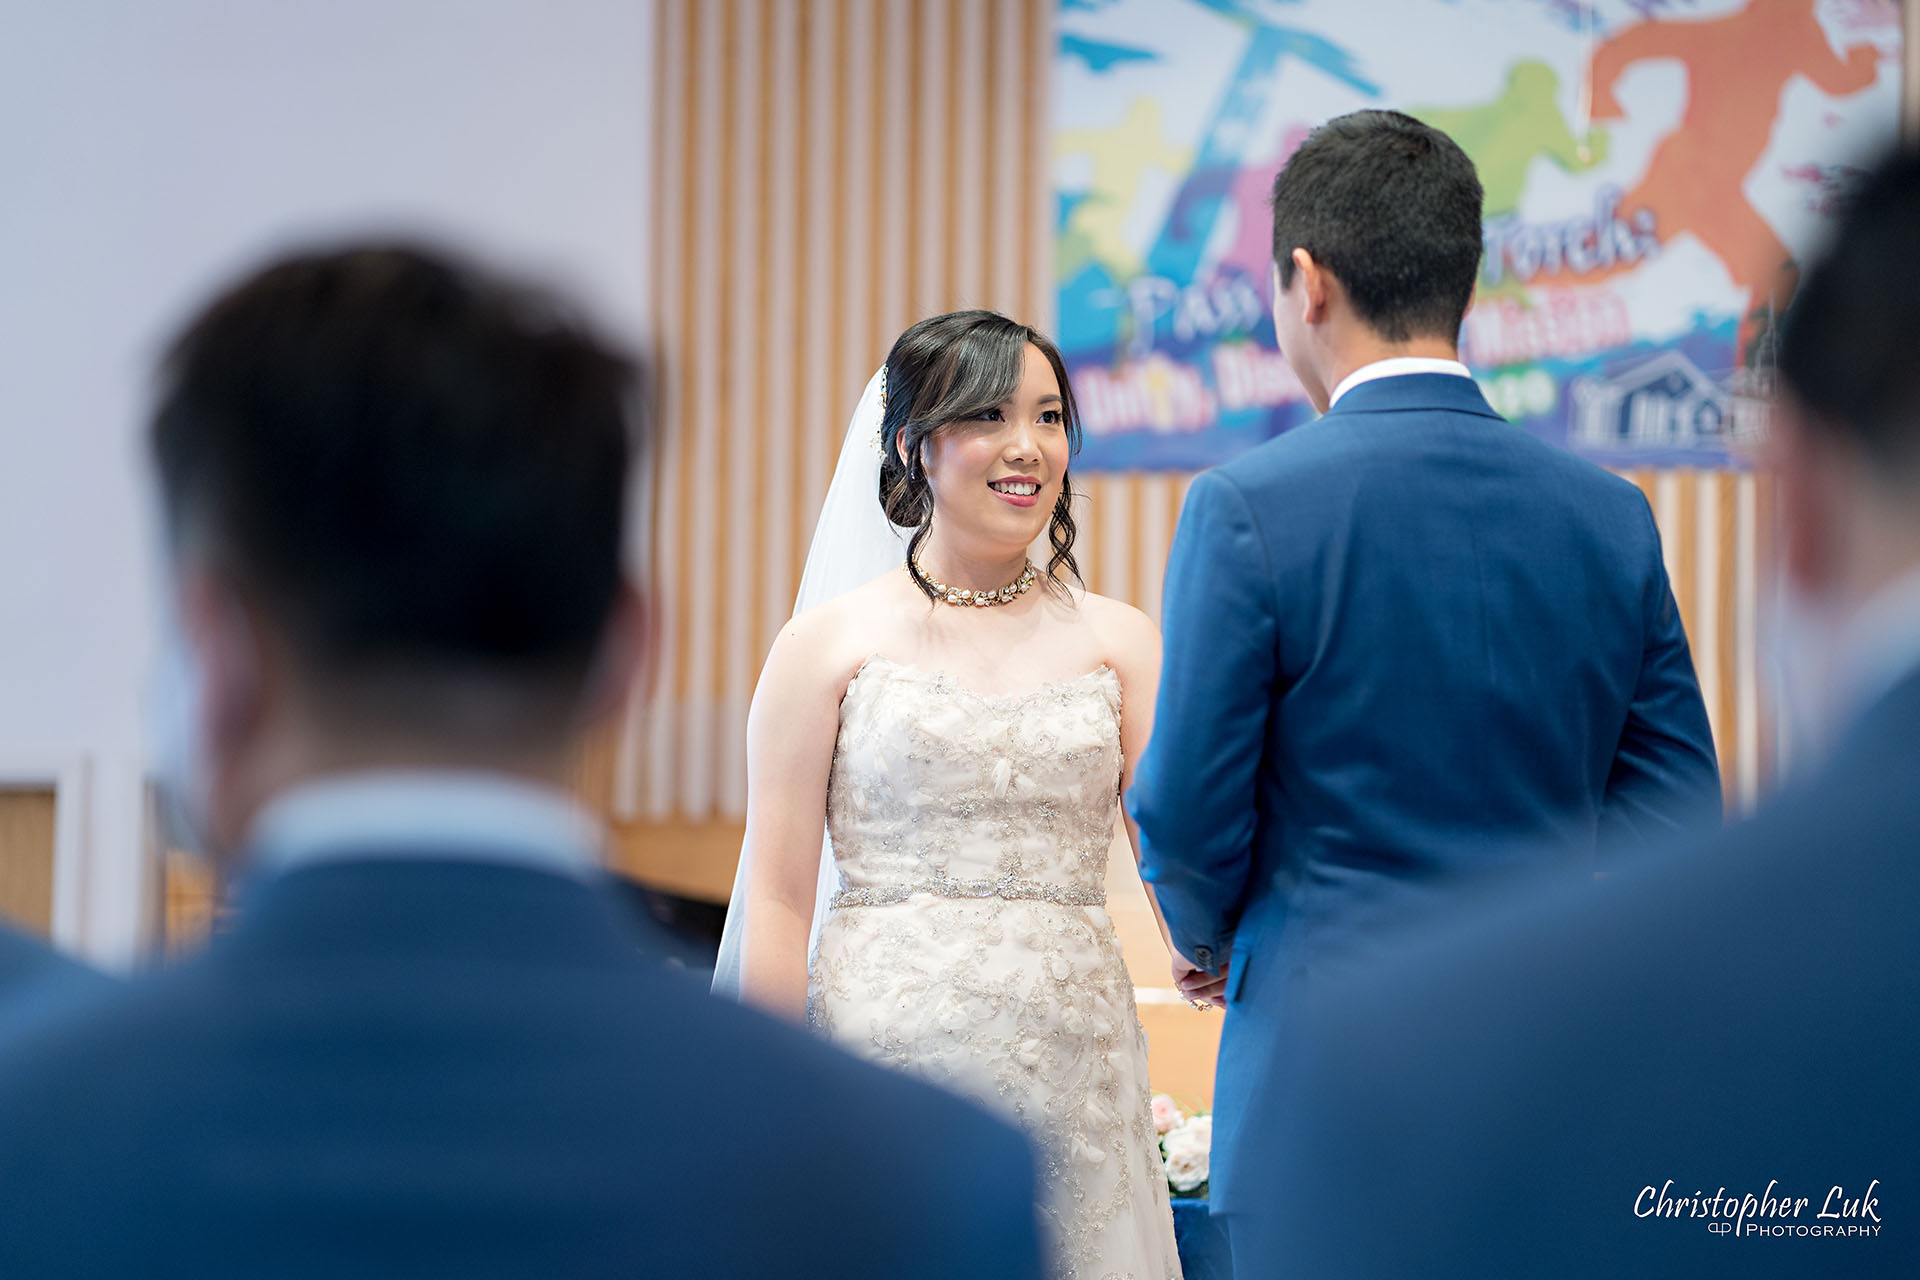 Christopher Luk Toronto Wedding Photographer Bridle Trail Baptist Church Unionville Main Street Crystal Fountain Event Venue Ceremony Location Interior Bride Groom Sanctuary Natural Photojournalistic Candid Vows Smile Laugh Reaction